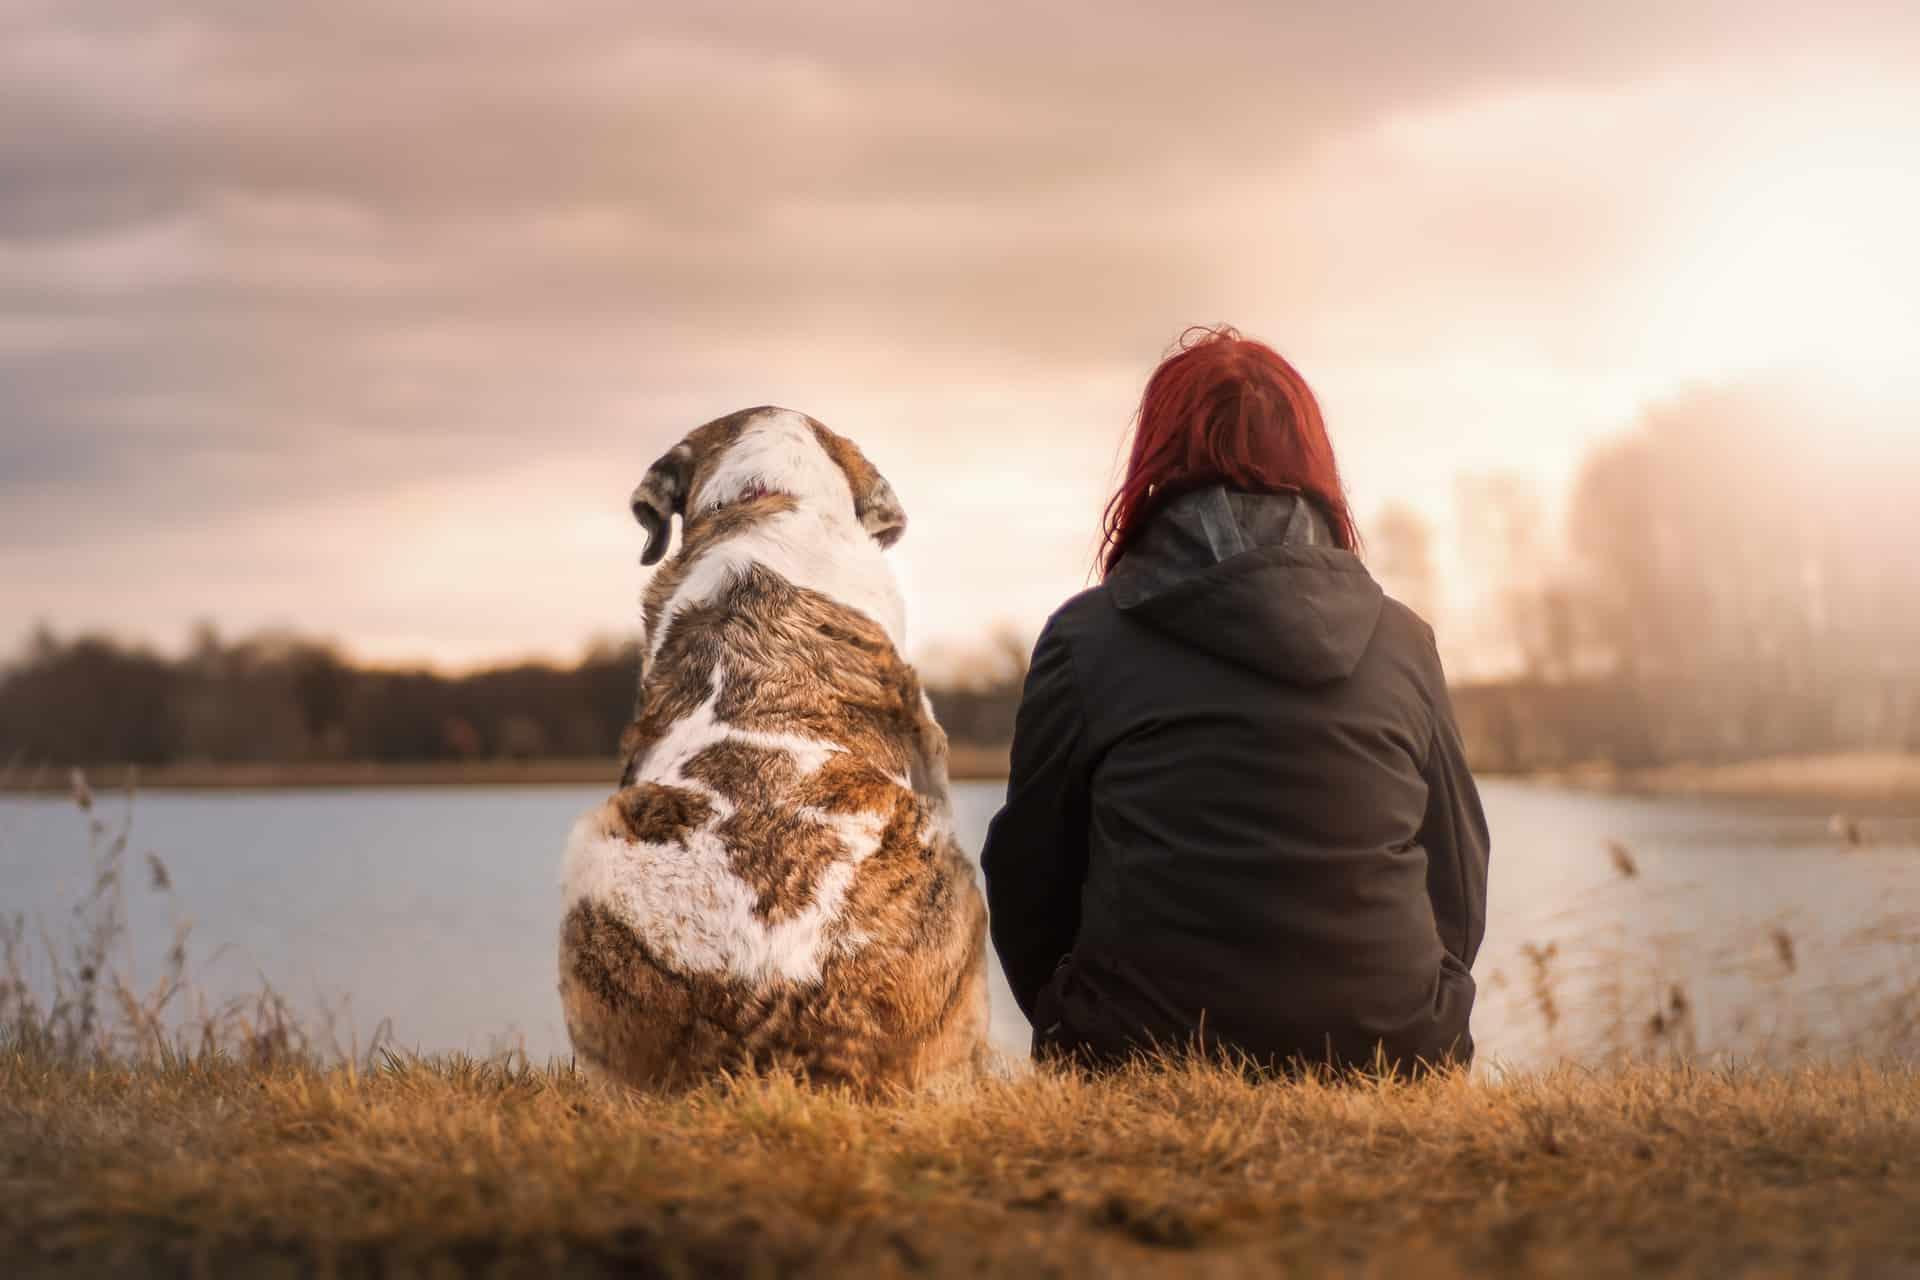 Dog and human sitting staring into distance